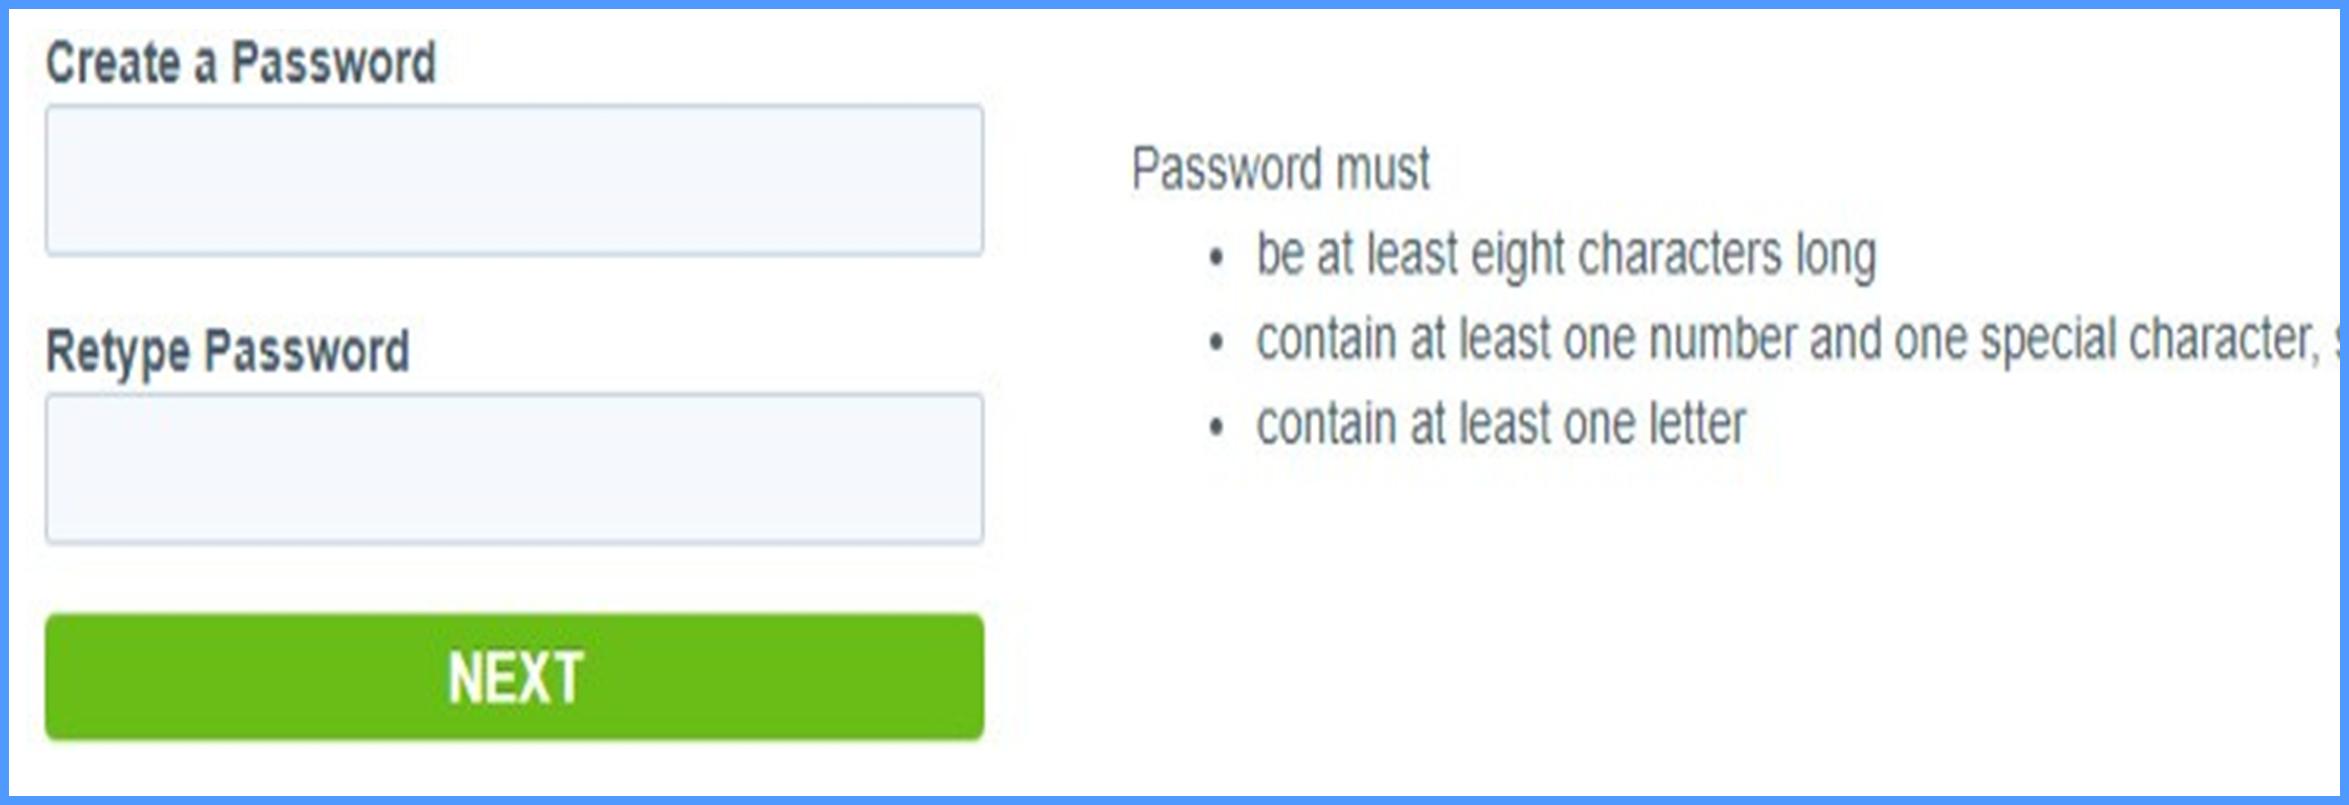 Create password page